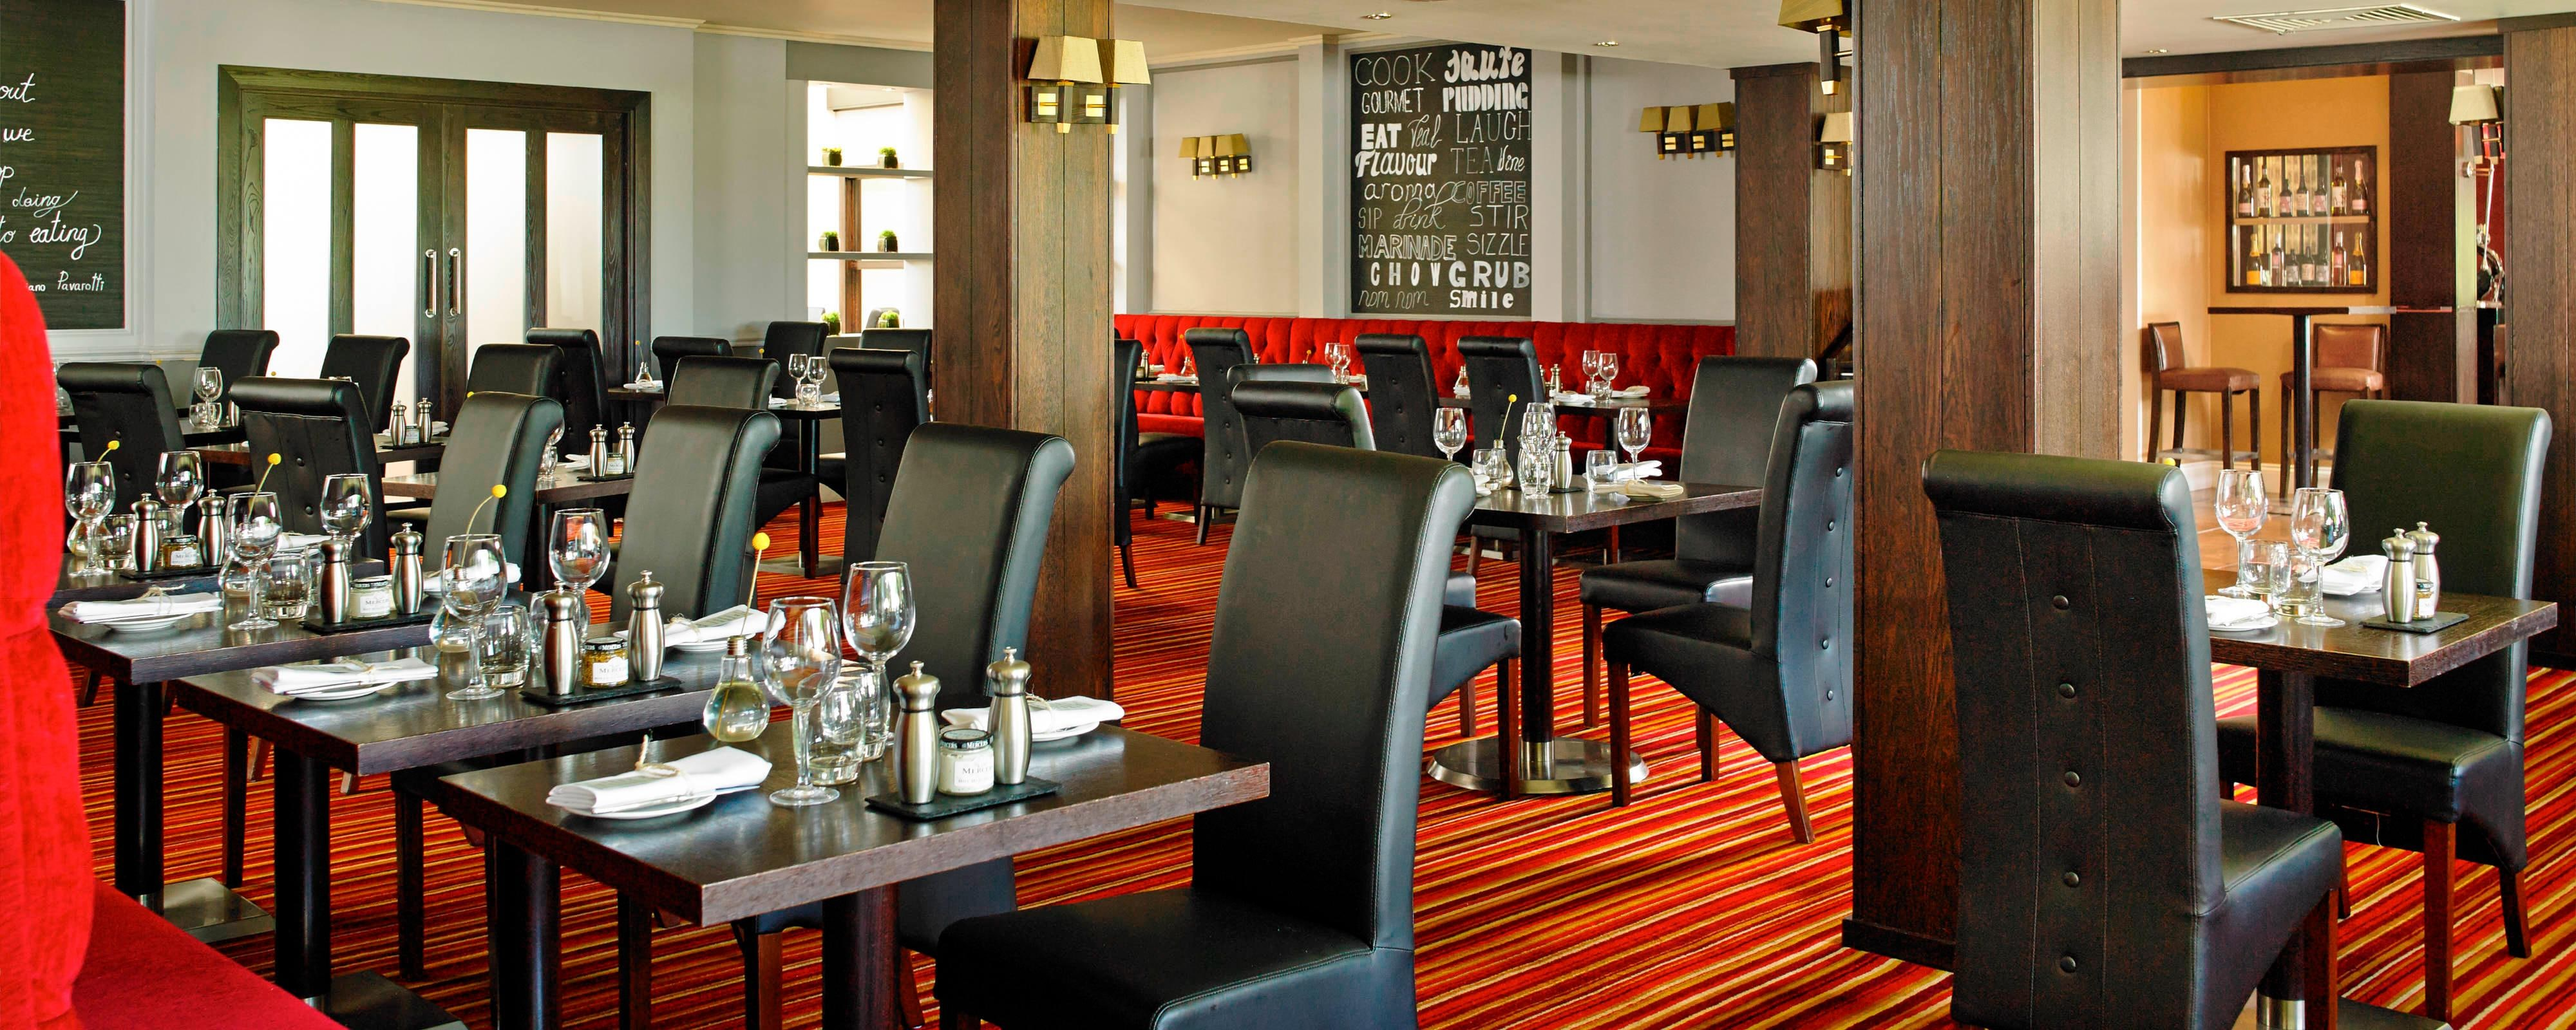 York Marriott Restaurant